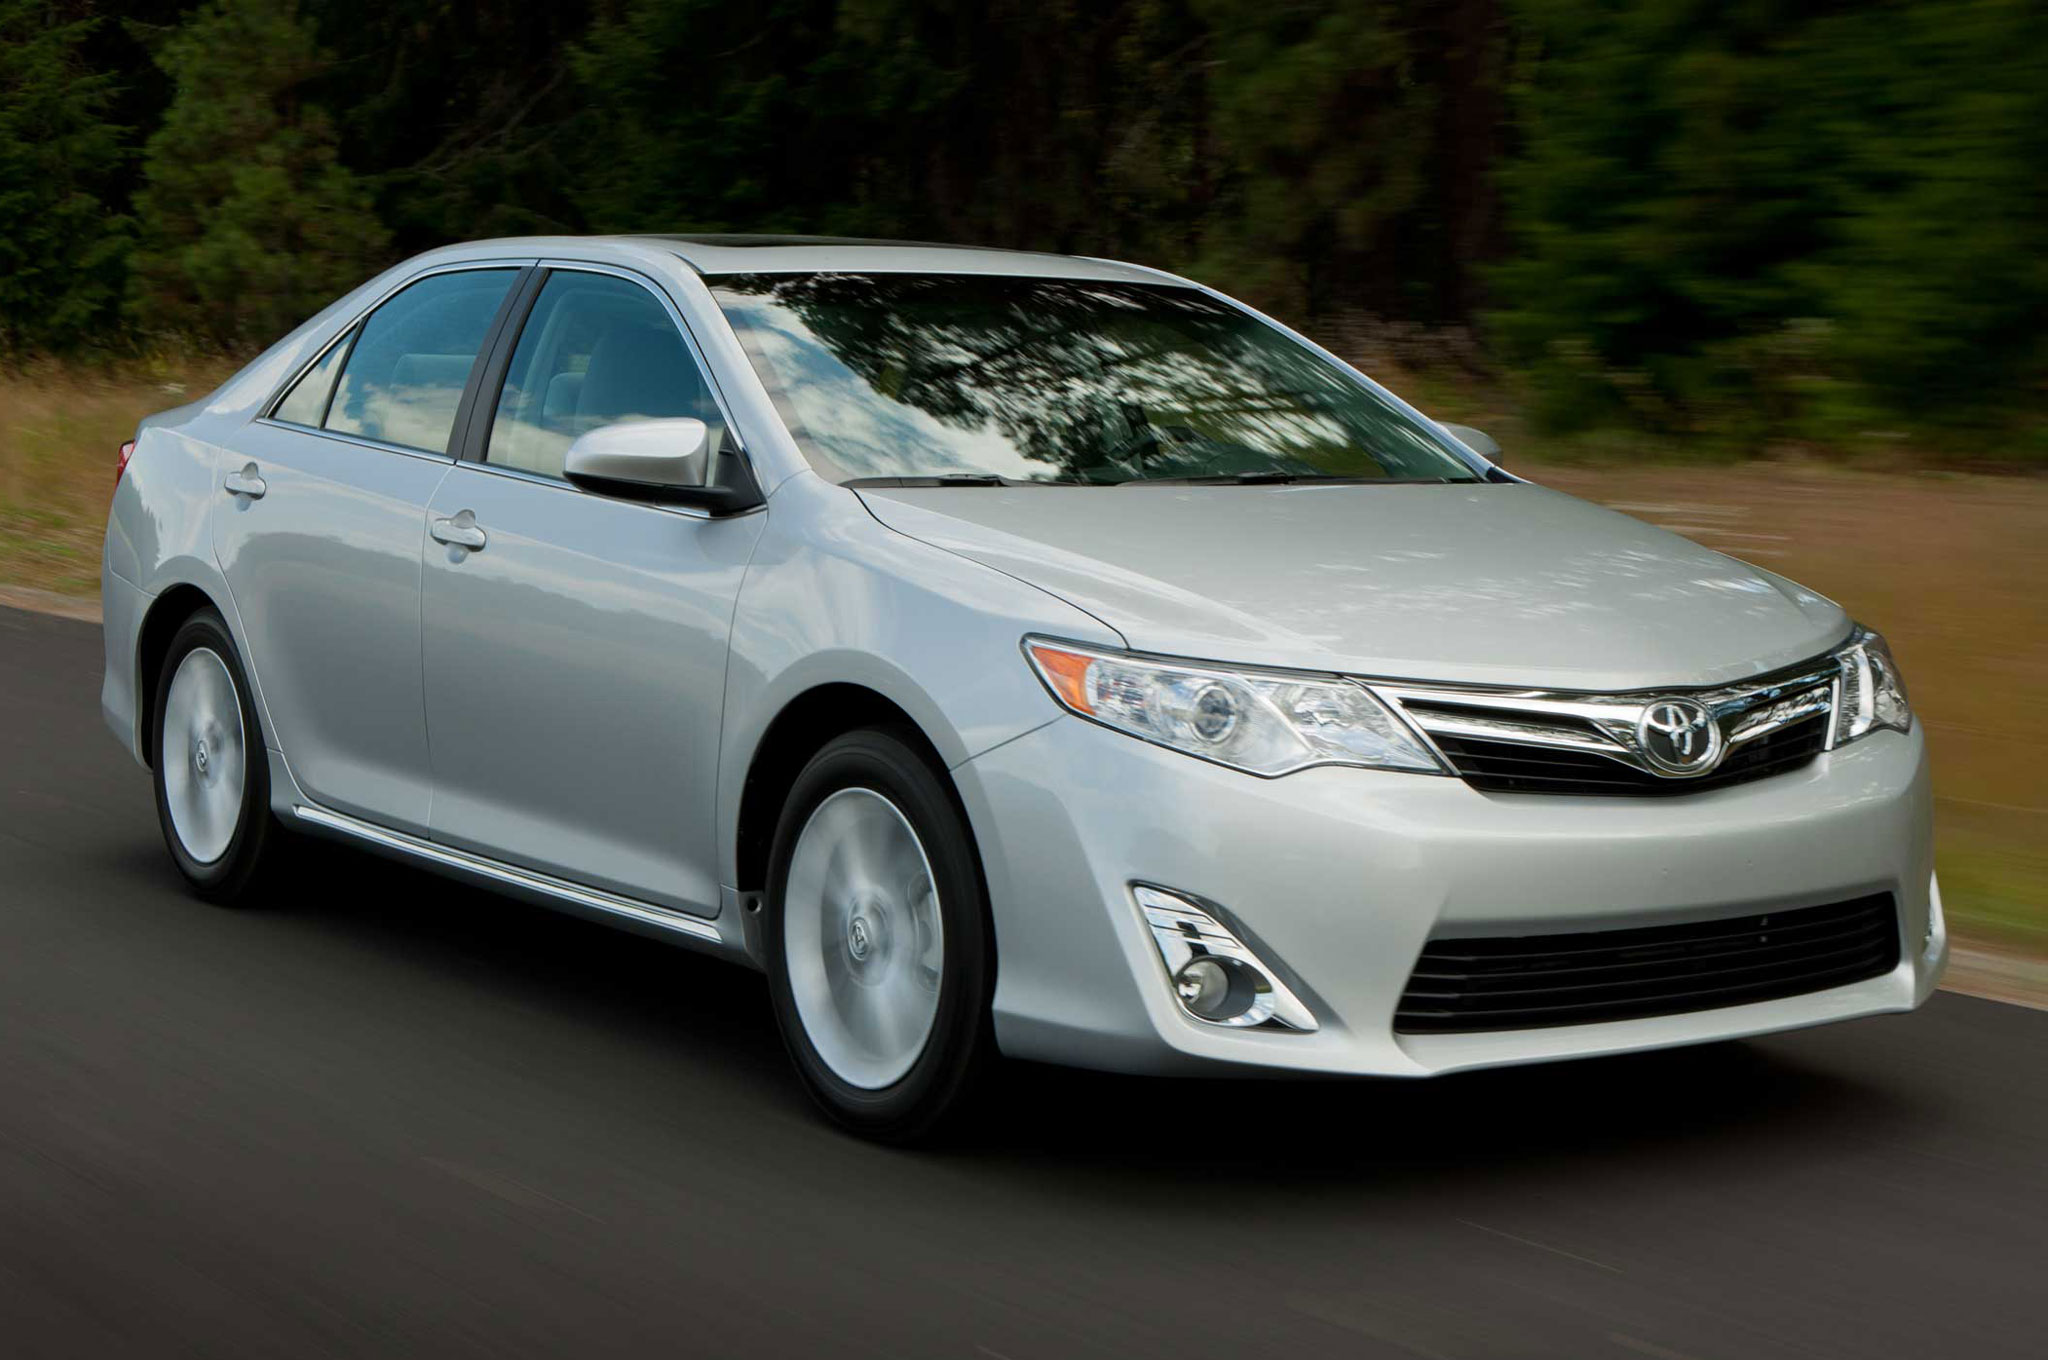 2013 Toyota Camry Front Three Quarter Silver1